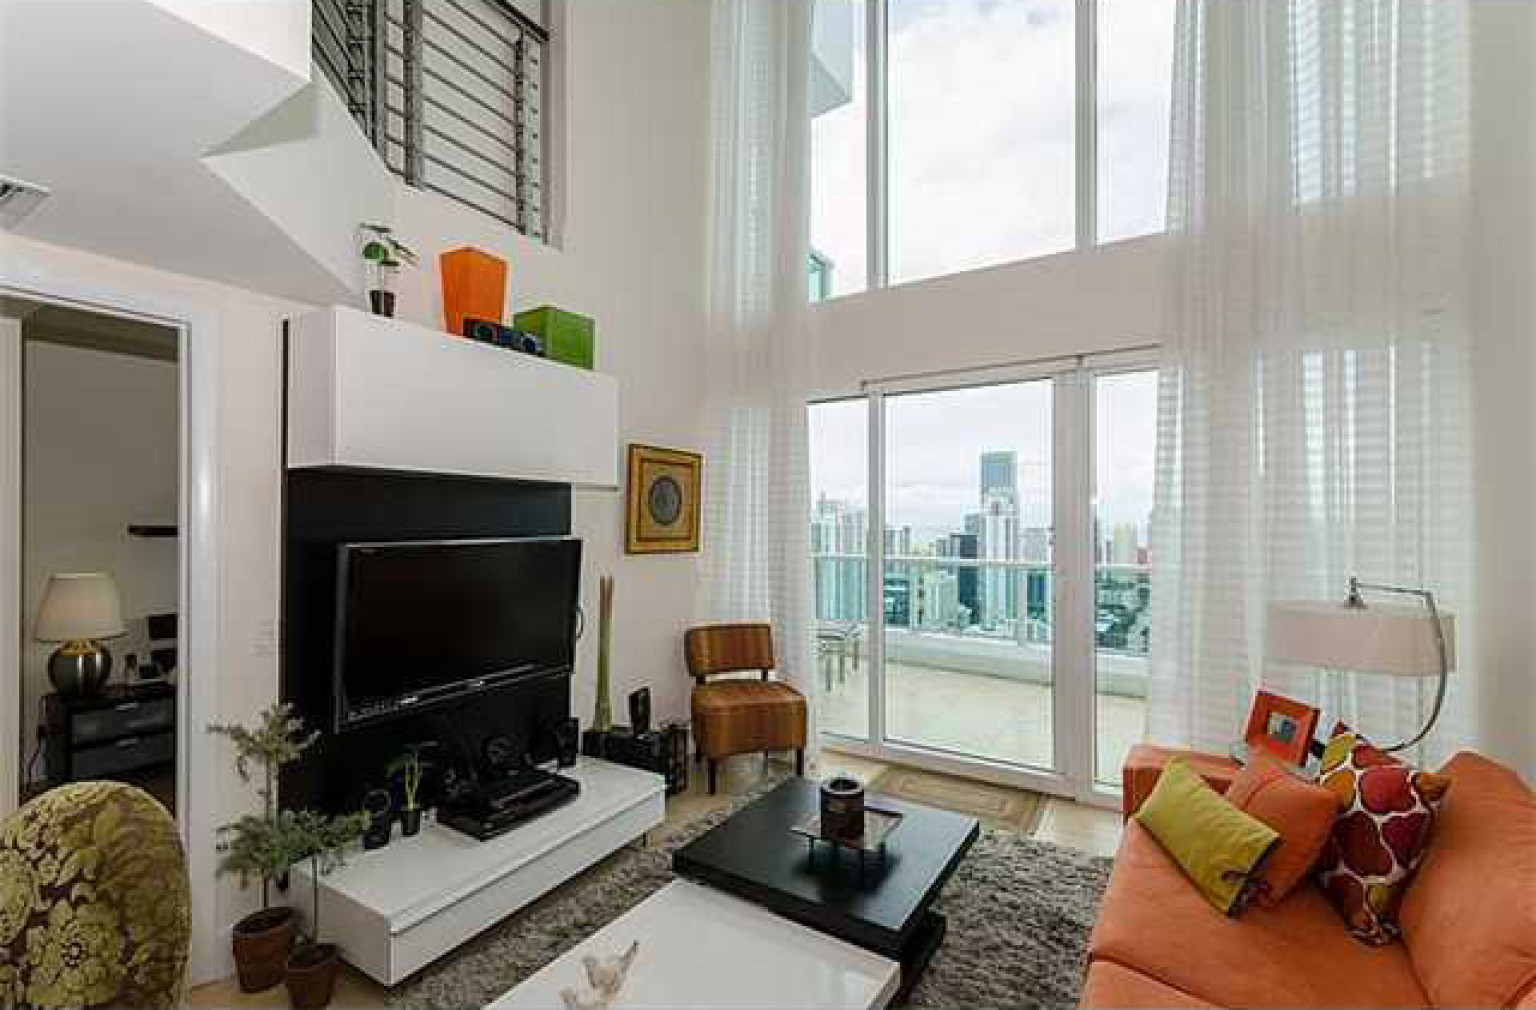 7 chic miami lofts for sale photos huffpost - 1 bedroom apartments for rent in miami ...